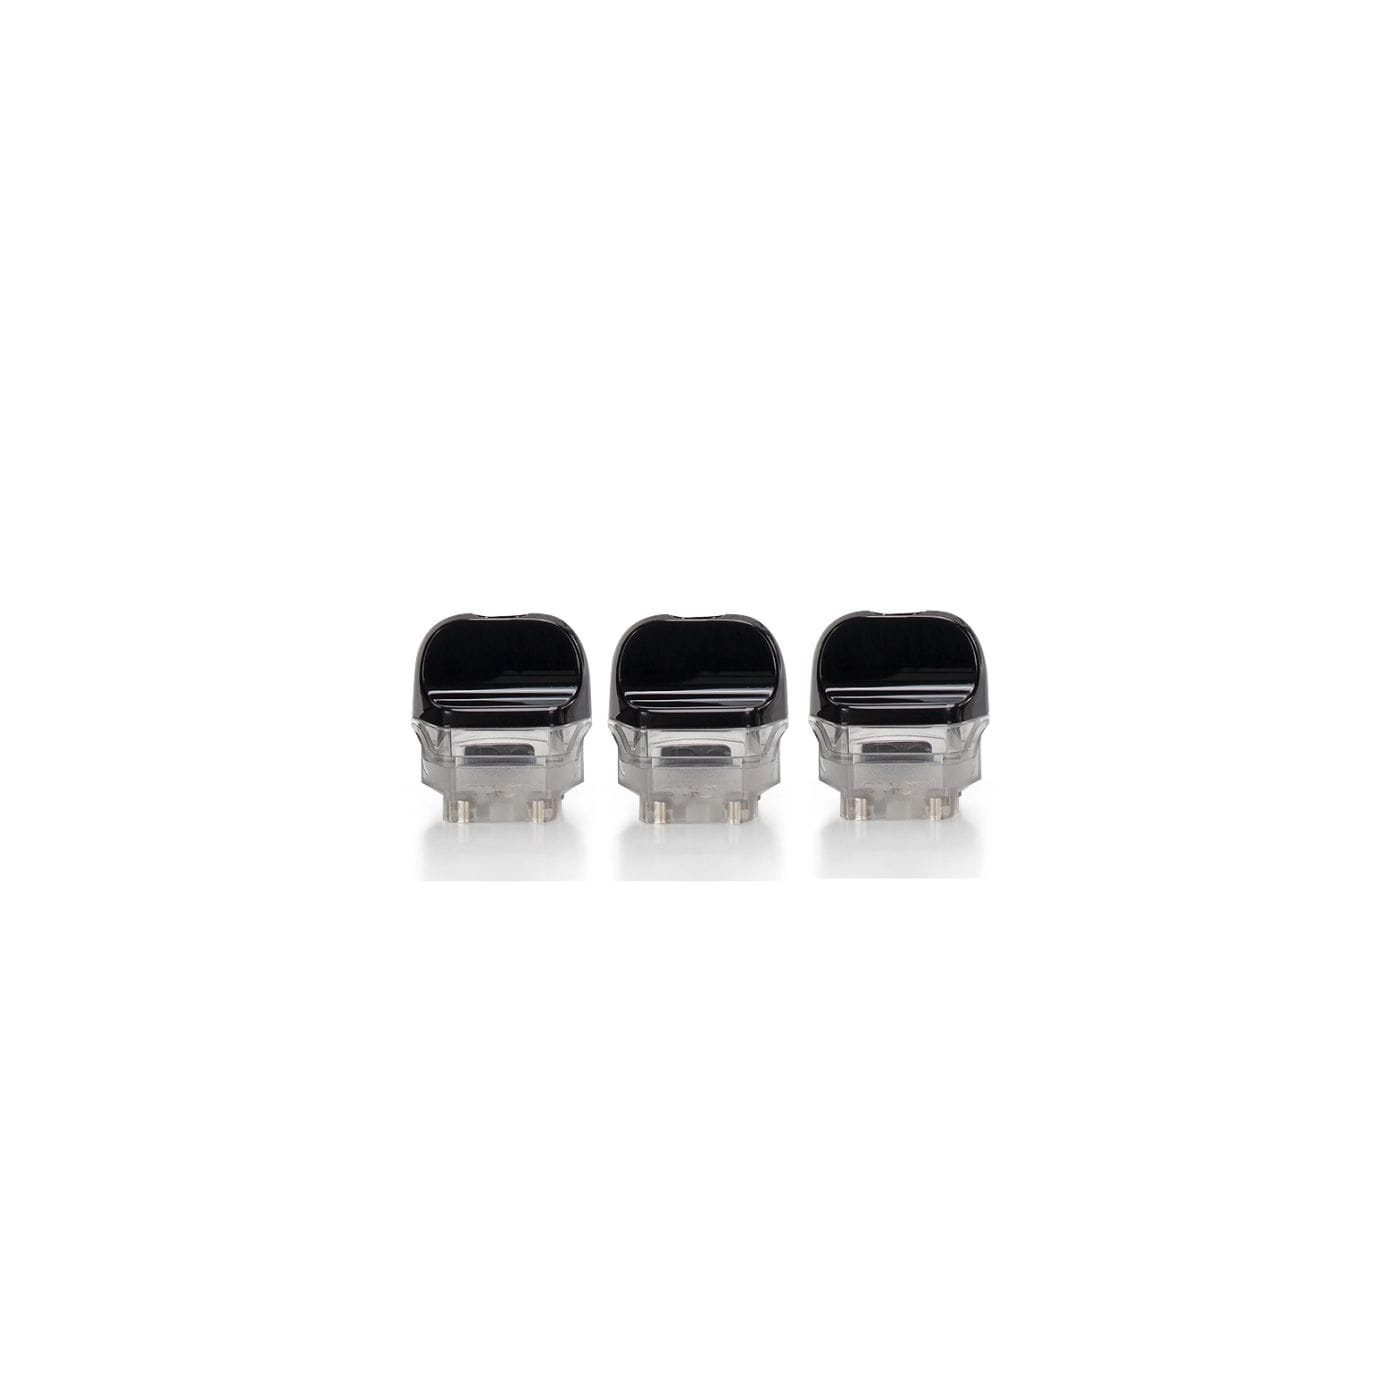 Smok IPX80 RPM 2 Replacement Pod - 3 Pack